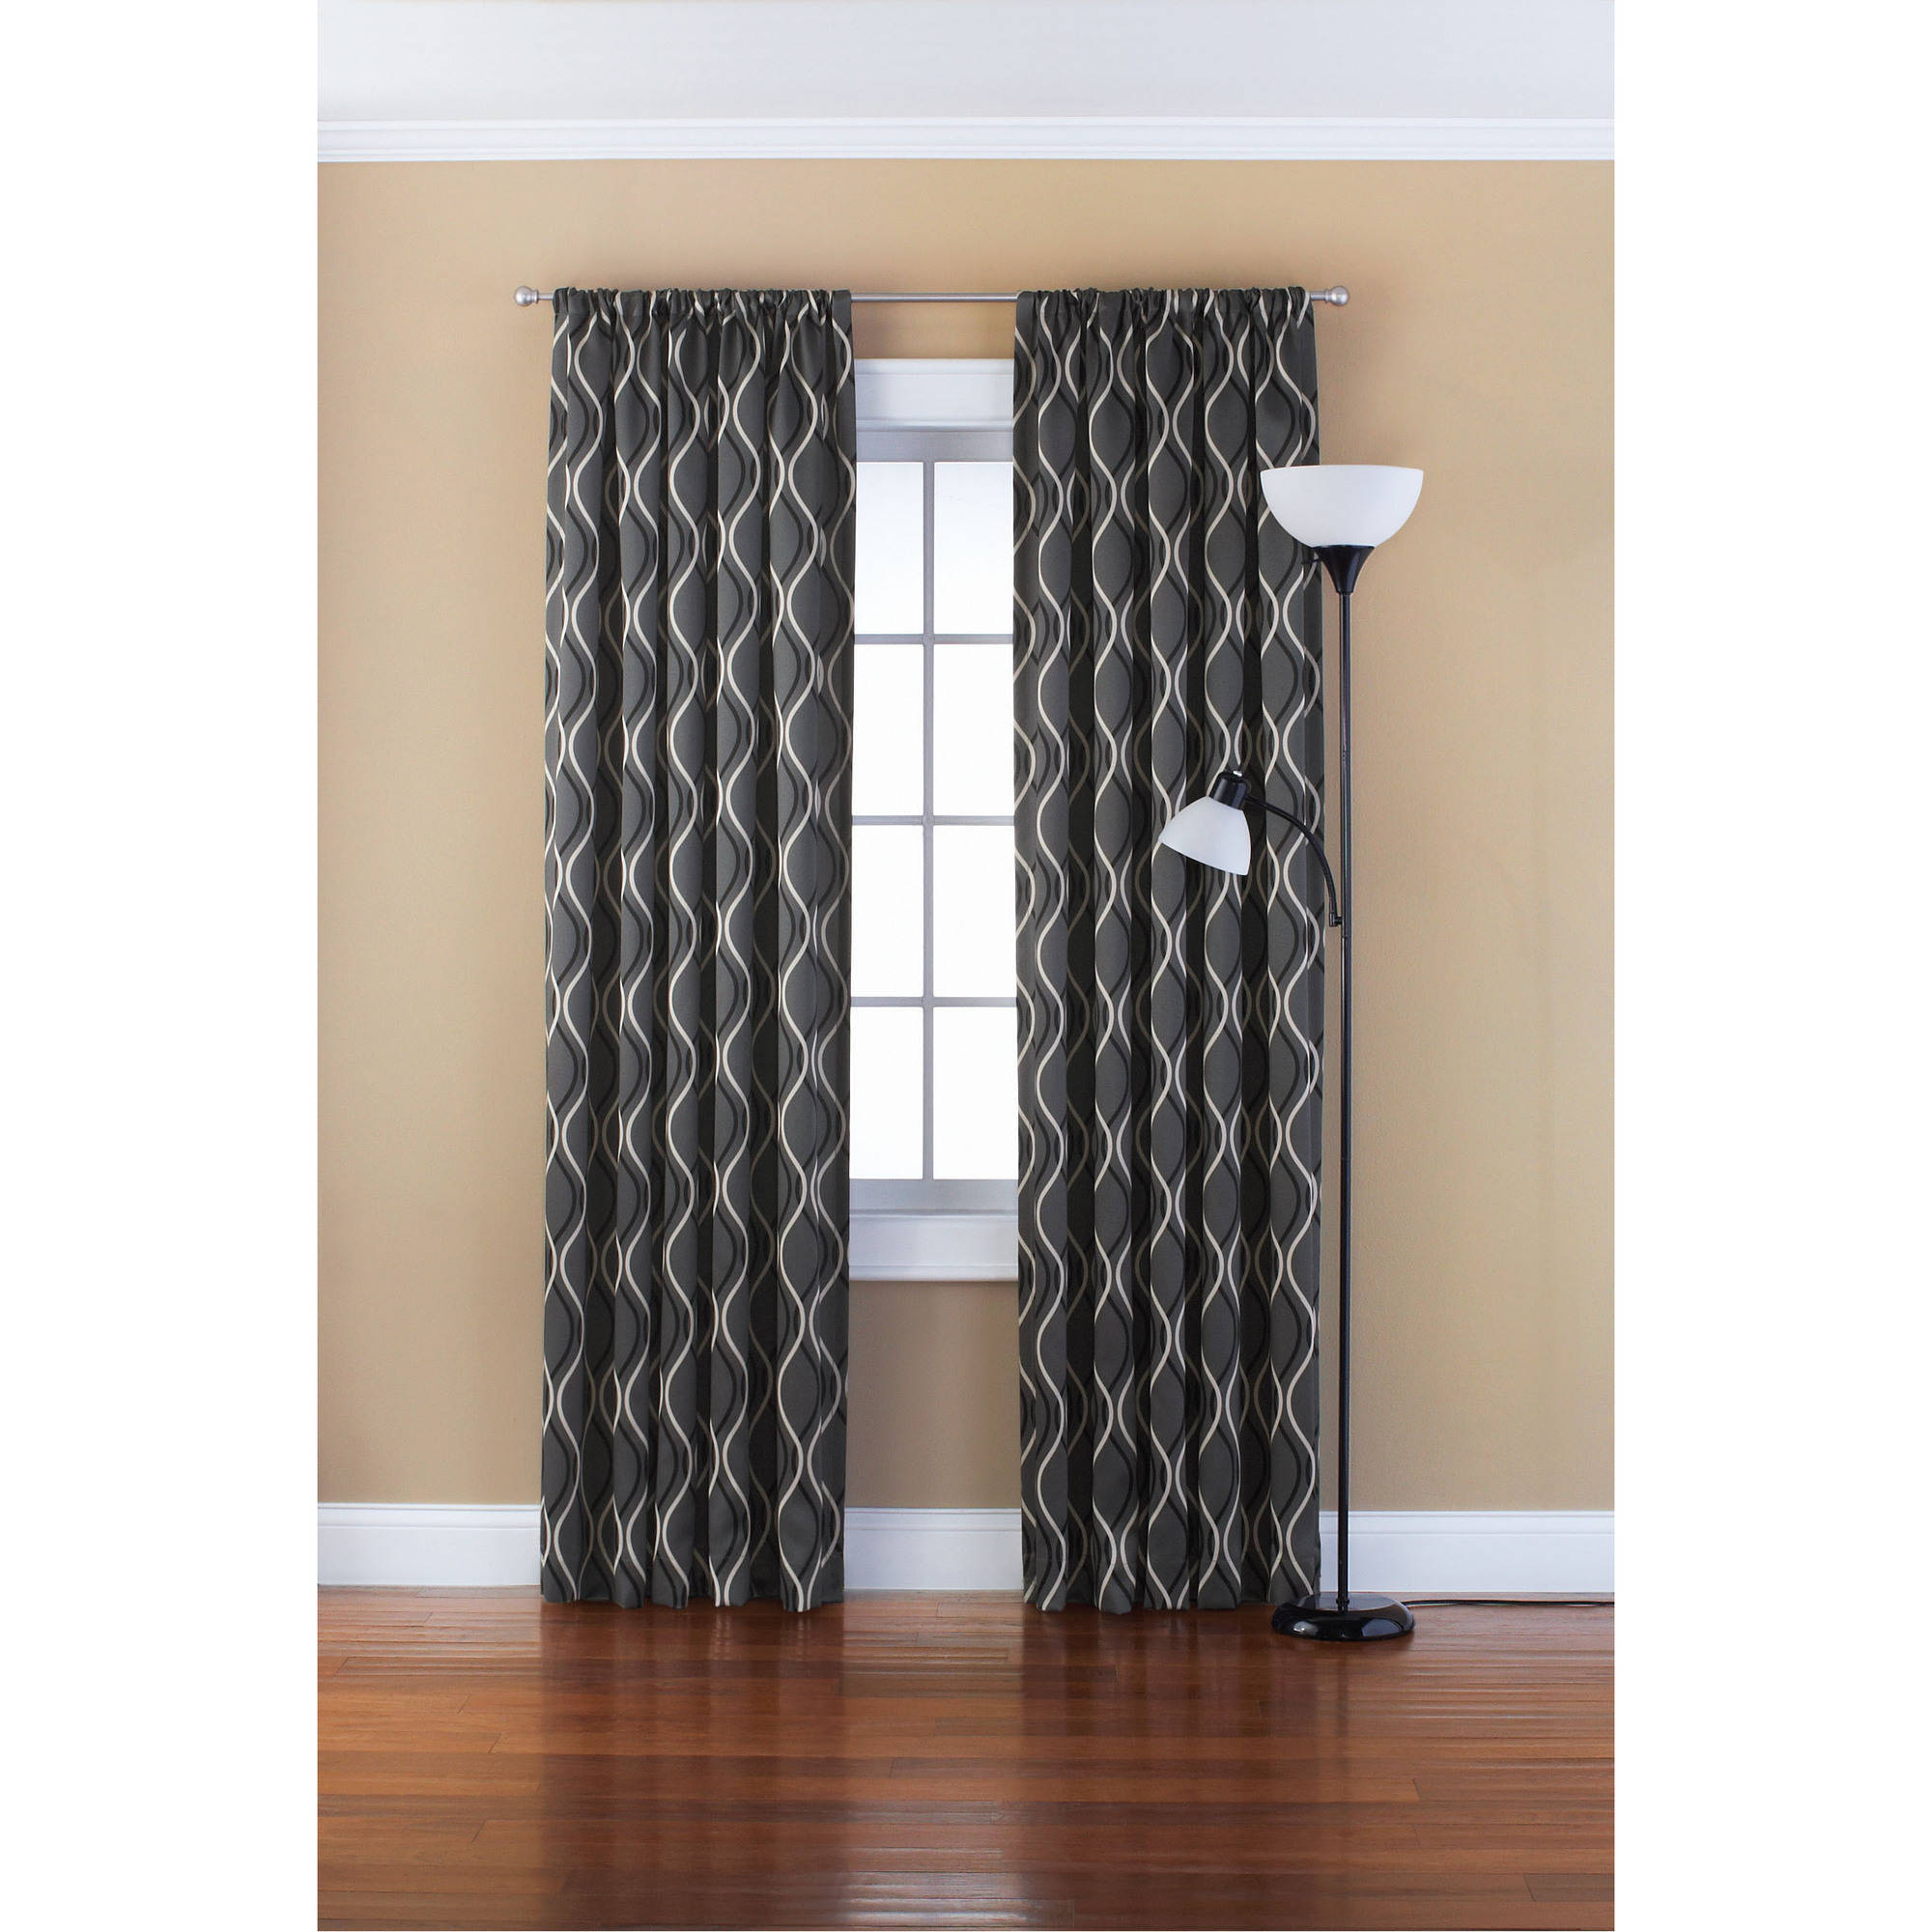 Most Popular Eclipse Solid Thermapanel Room Darkening Curtain Panel Regarding Eclipse Solid Thermapanel Room Darkening Single Panel (Gallery 17 of 20)